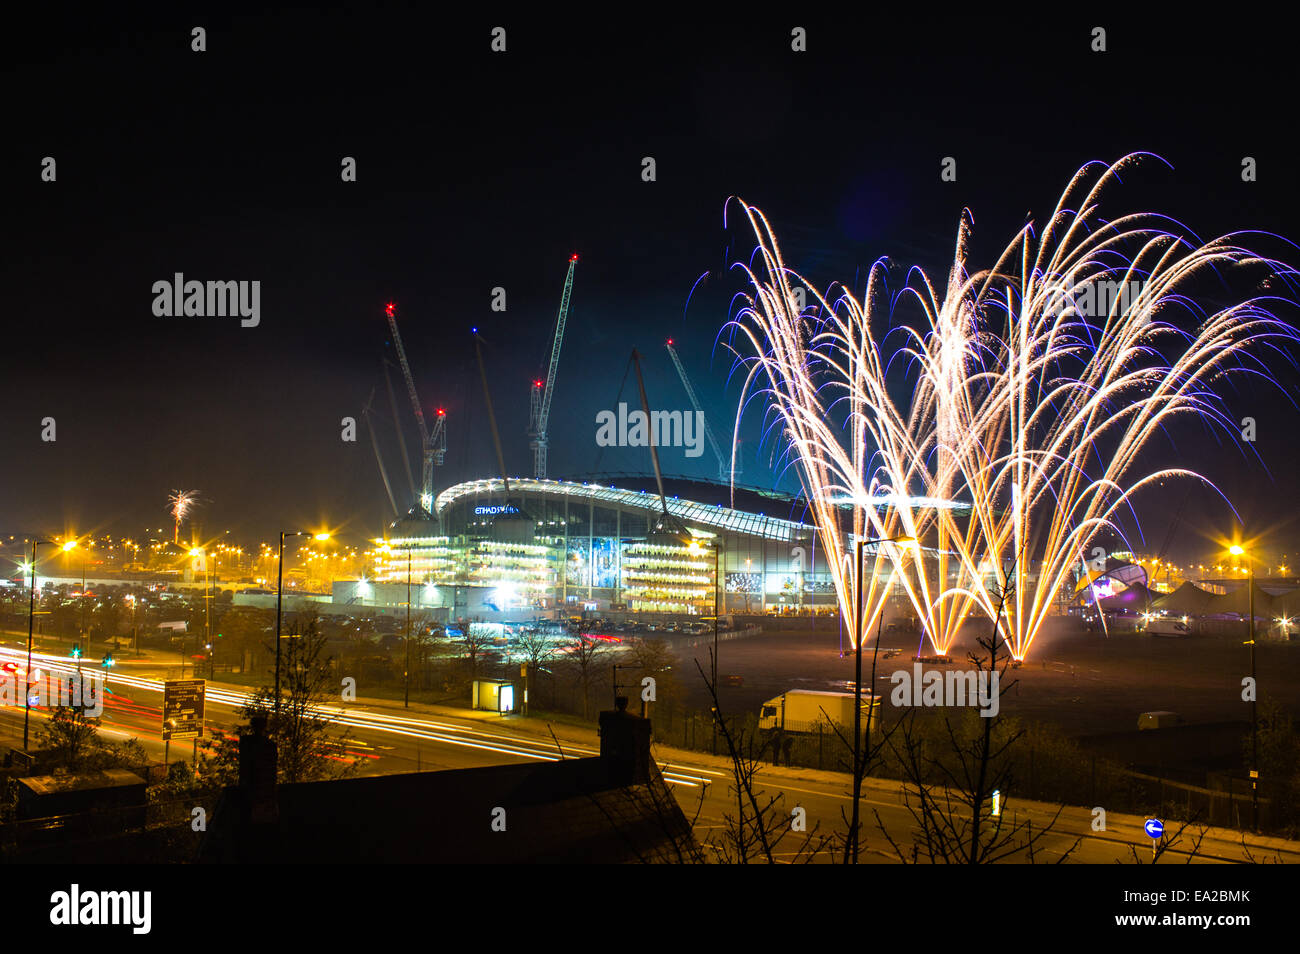 Stock Photo - Etihad Stadium and fireworks before Bonfire Night    Etihad Stadium At Night